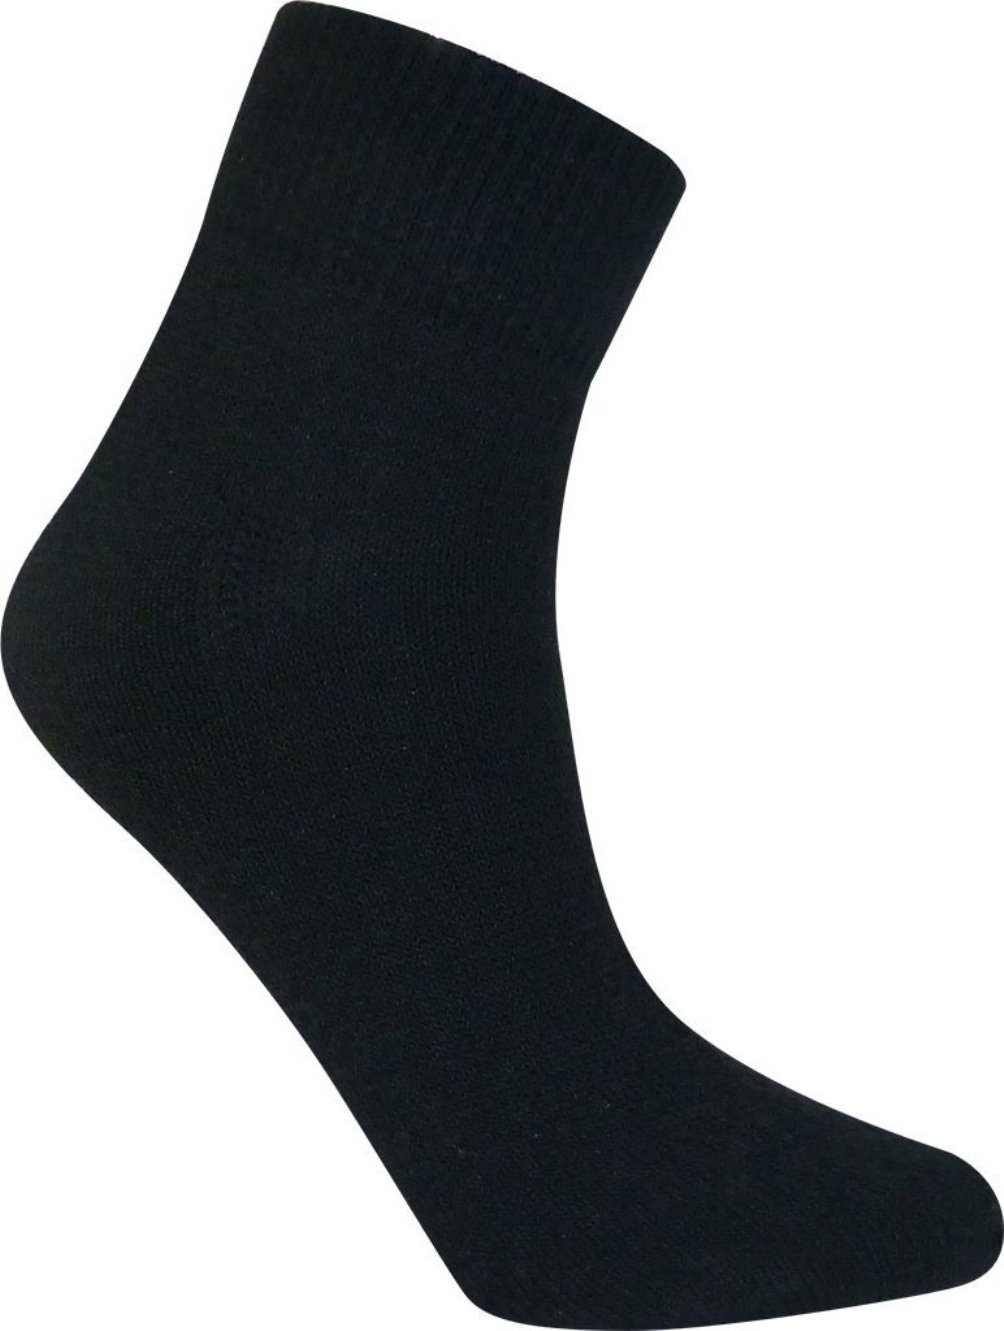 Davido Mens socks ankle/quarter made in italy 100% cotton 8 pairs (10-13, black)